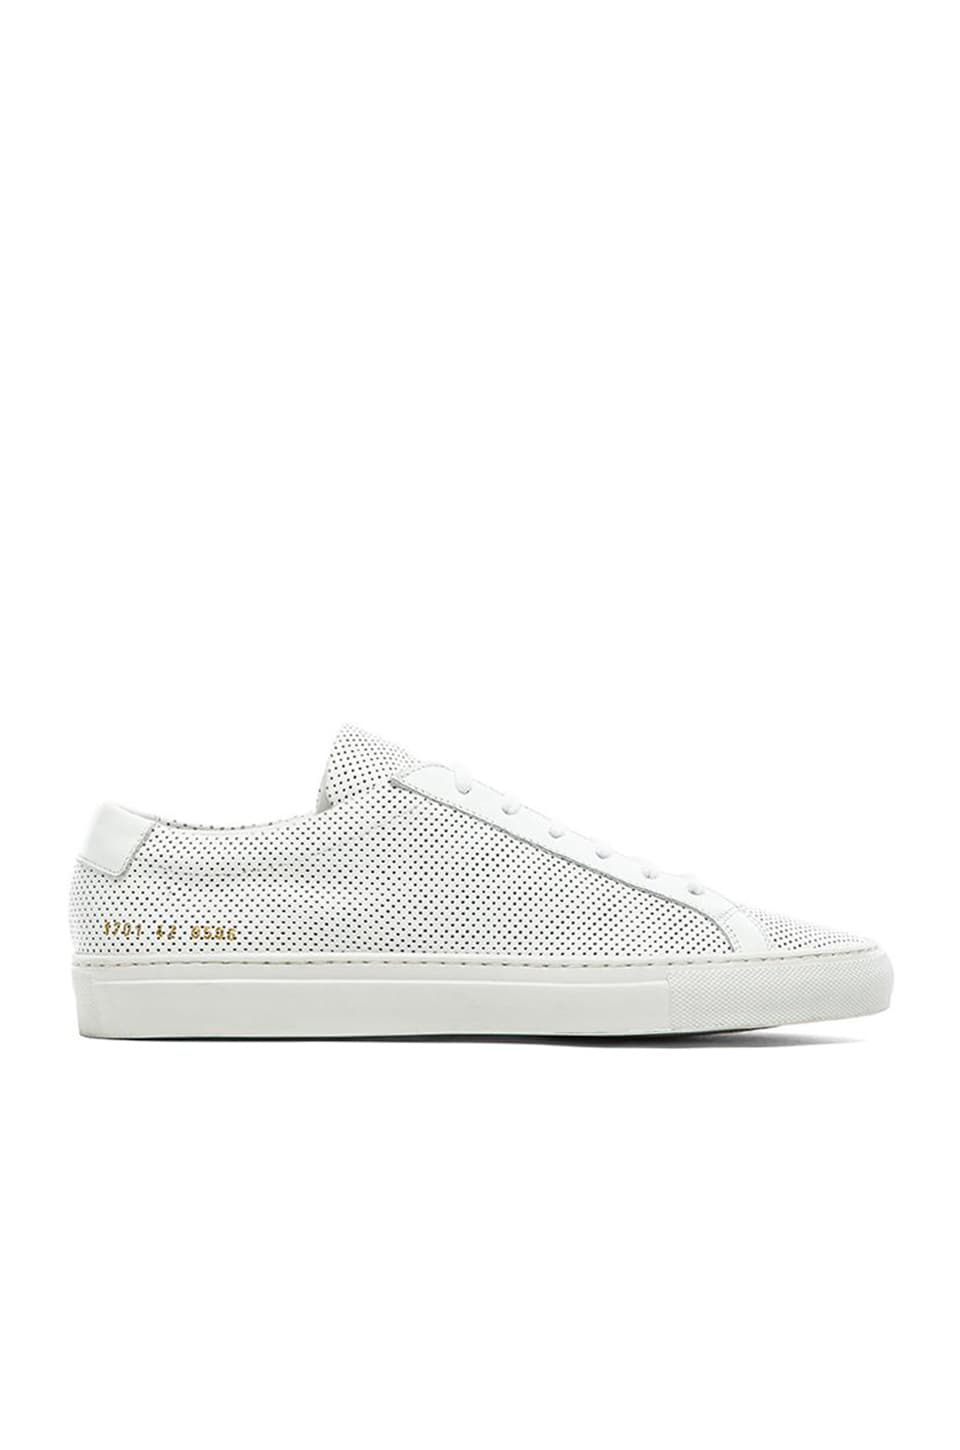 Original Achilles Perforated by Common Projects